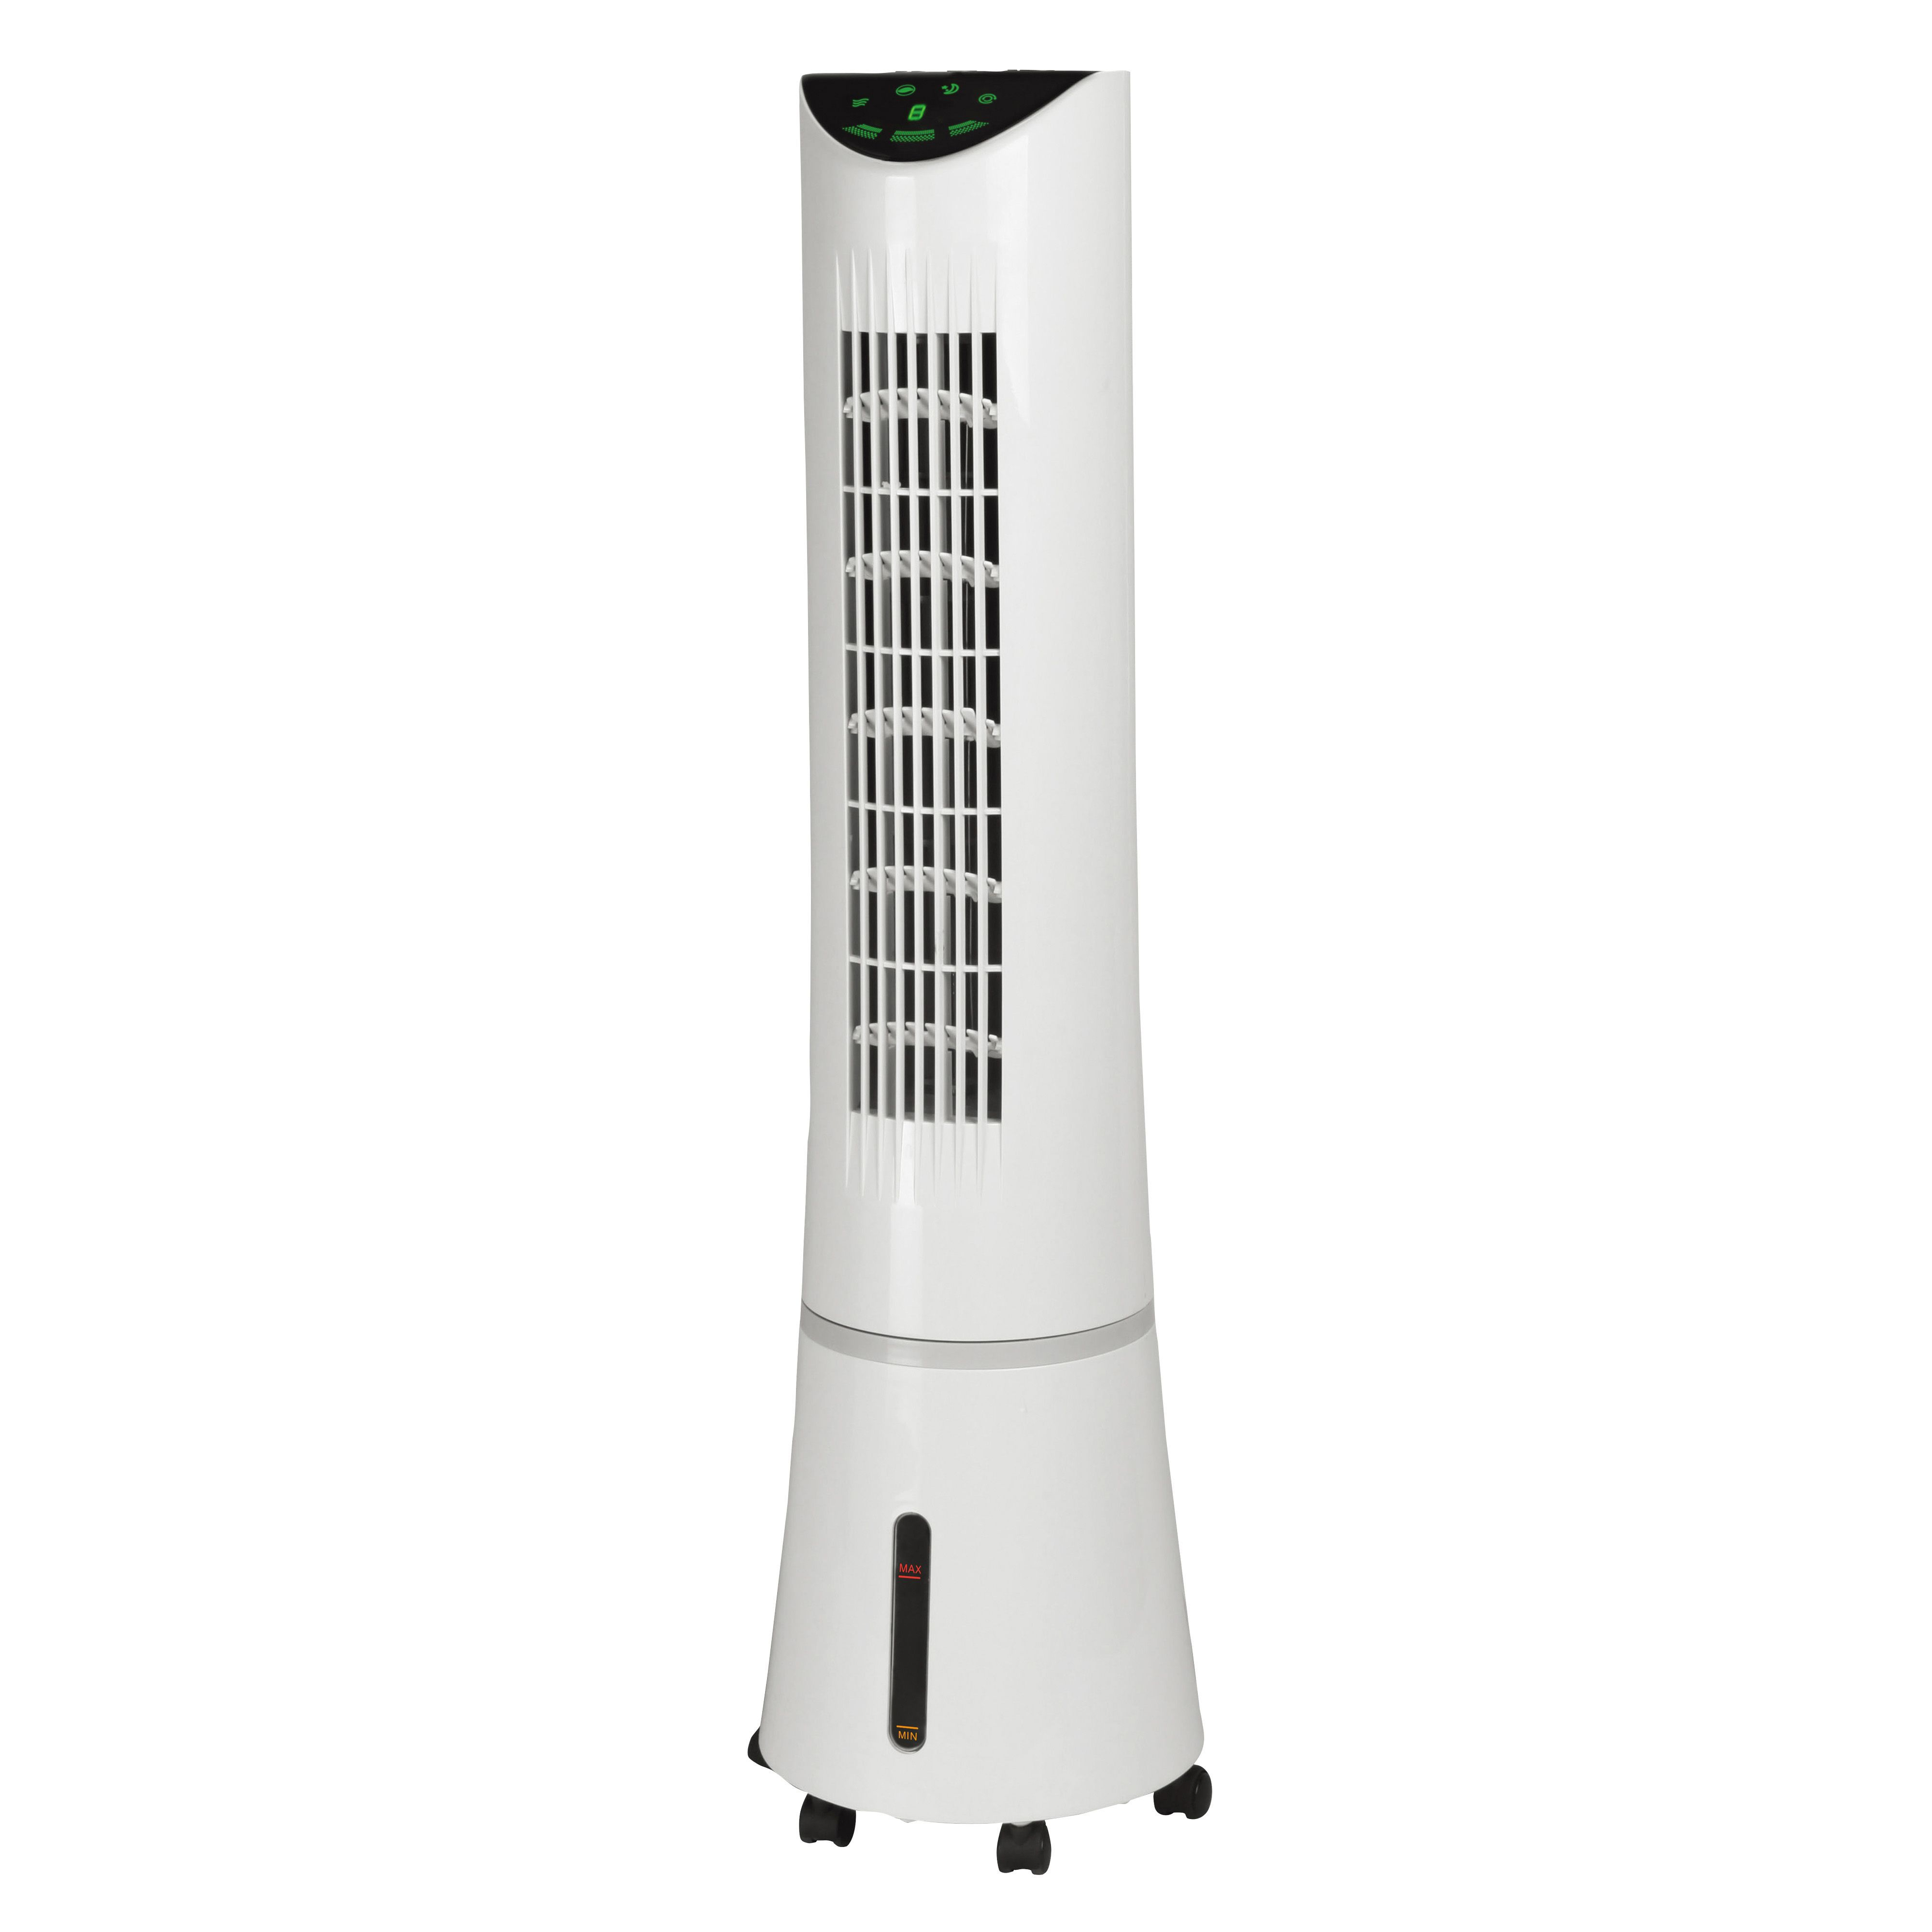 Animated Christmas Decorations Indoor Blyss Air Cooler | Dep...